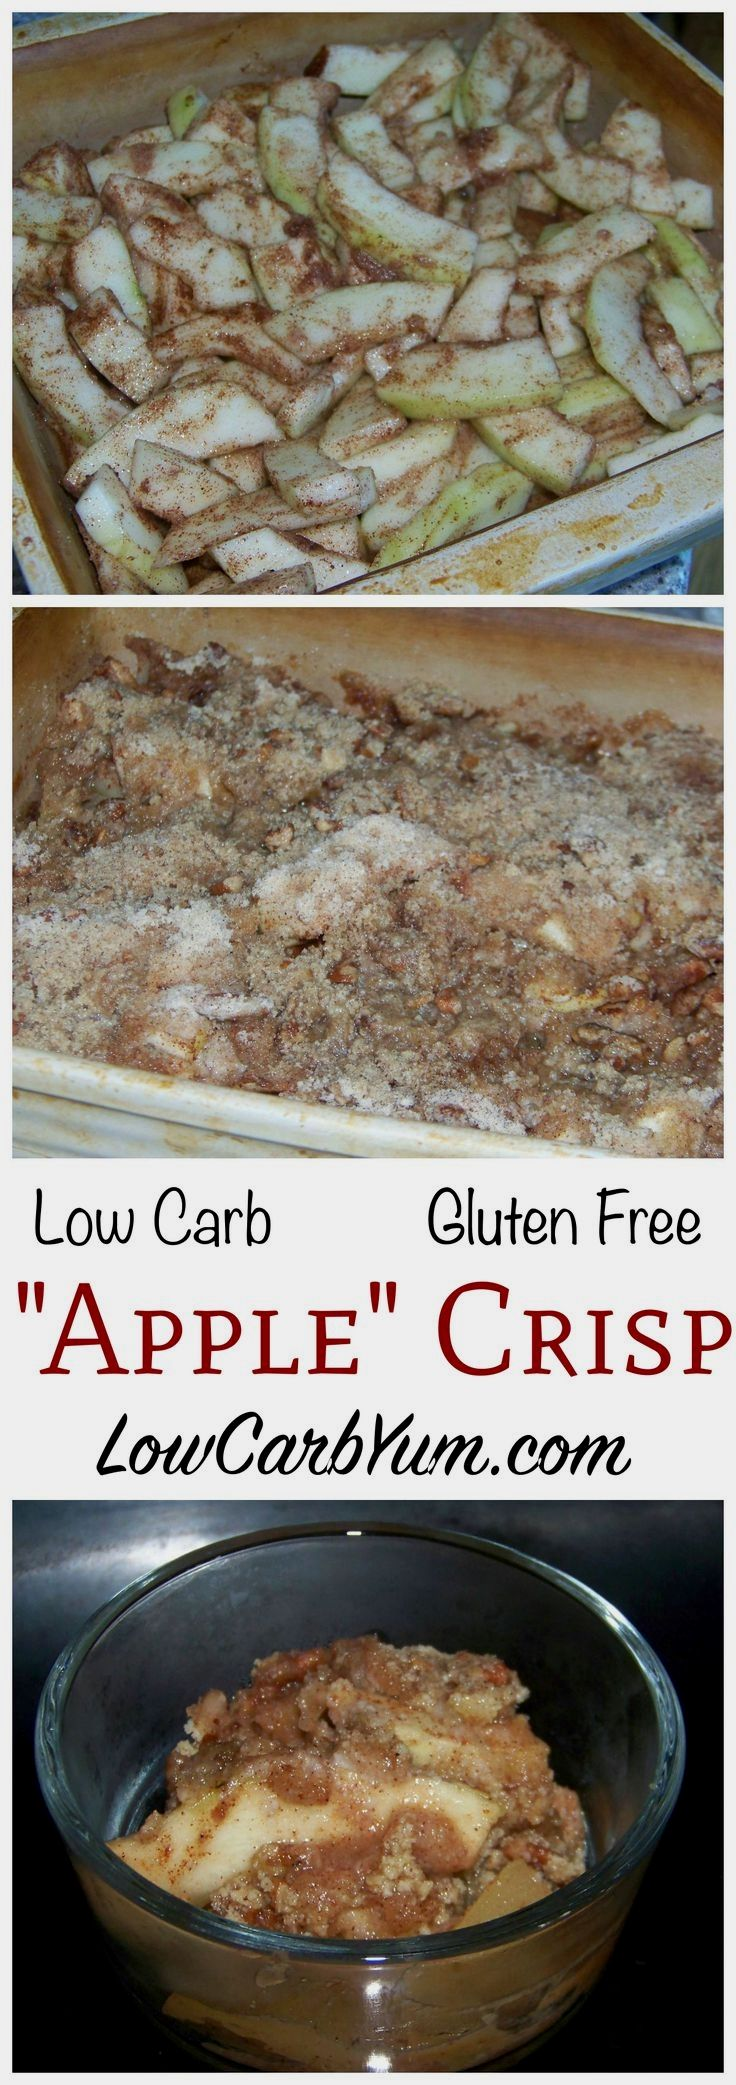 Apples are a forbidden fruit on the low carb diet, but this gluten free mock apple crisp using zucchini is a clever way to trick your taste buds when you crave apples. (Low Carb Apple Recipes)